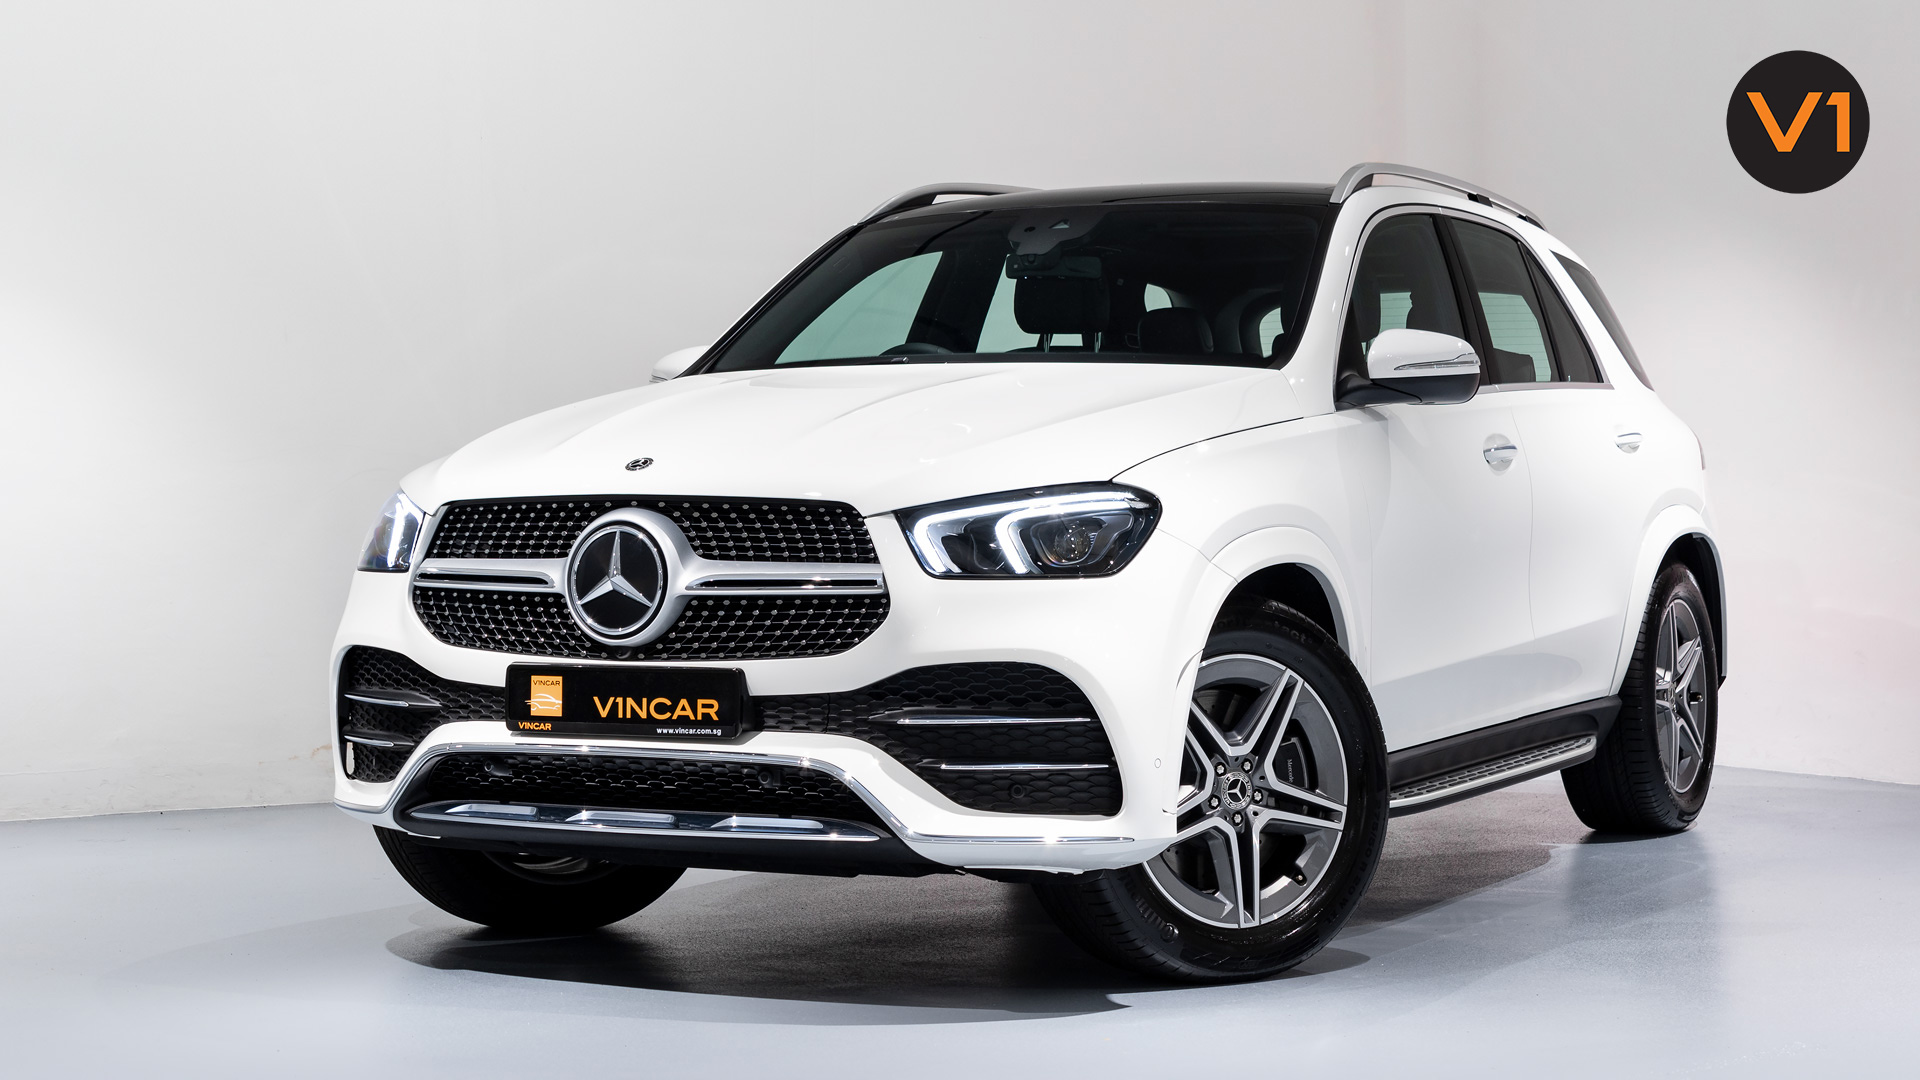 MERCEDES-BENZ GLE450 AMG 4MATIC LUXURY - Front Lower Angle